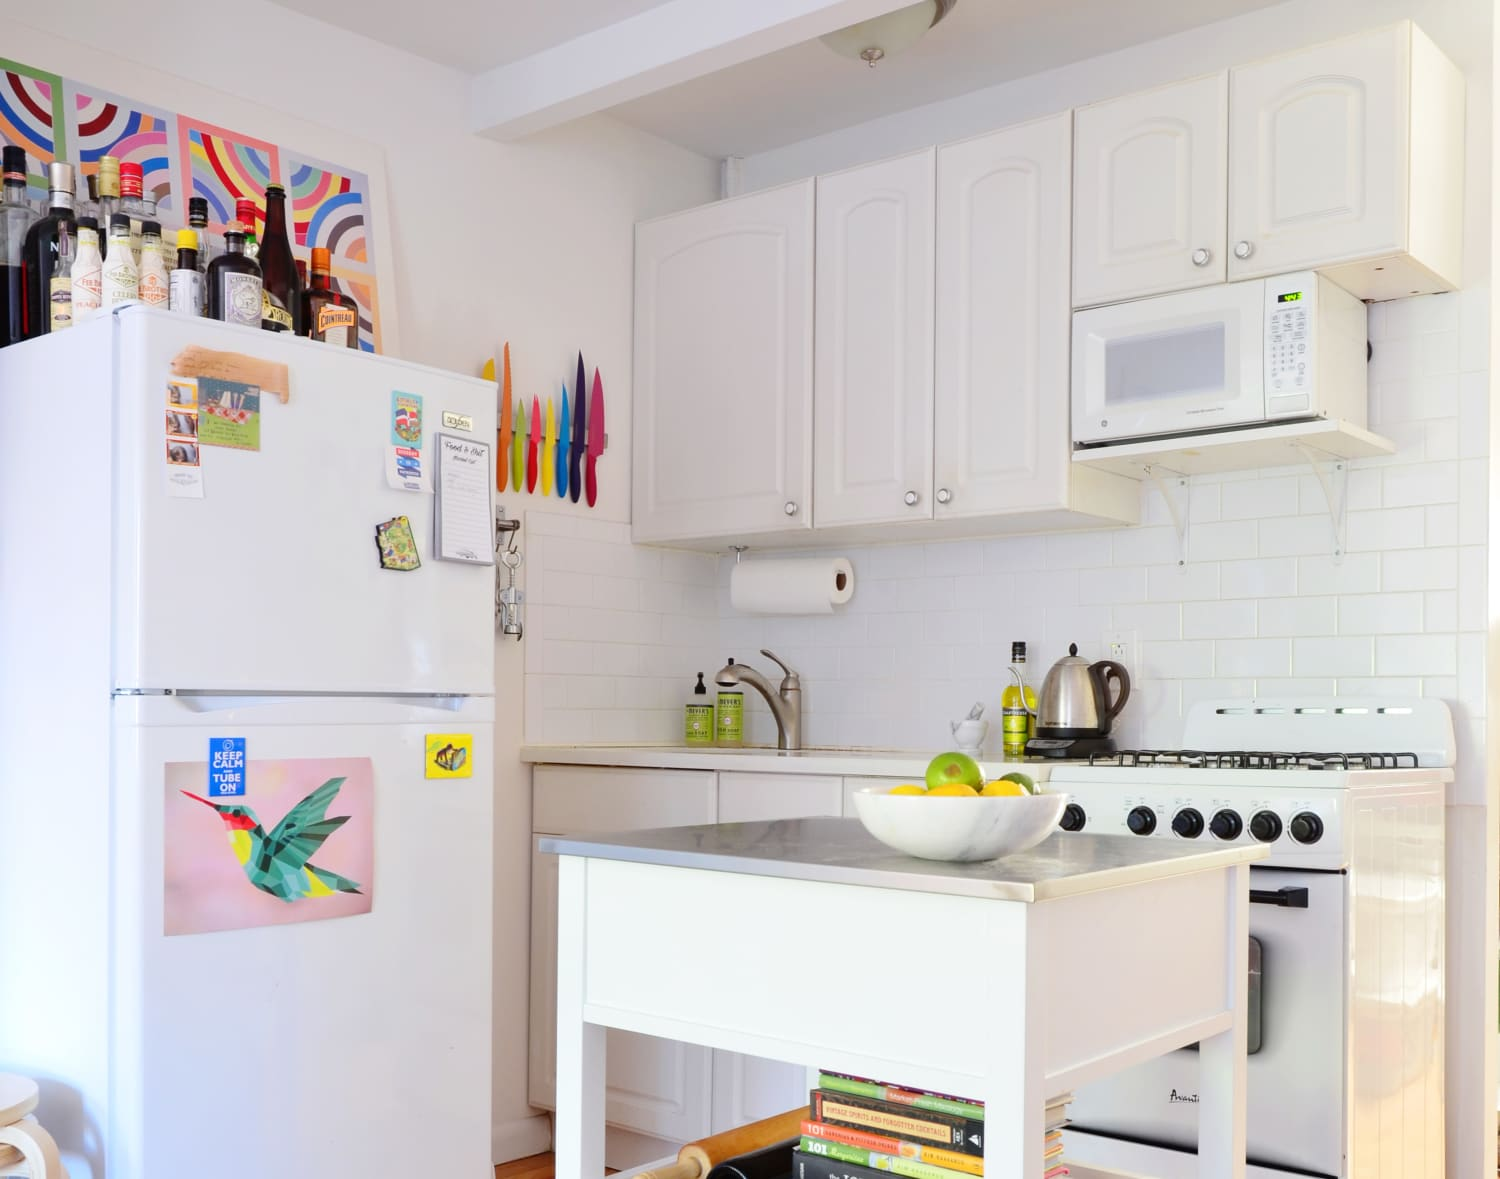 The 5 Amazon Small-Space Buys That Make My Apartment Livable (and Lovable)